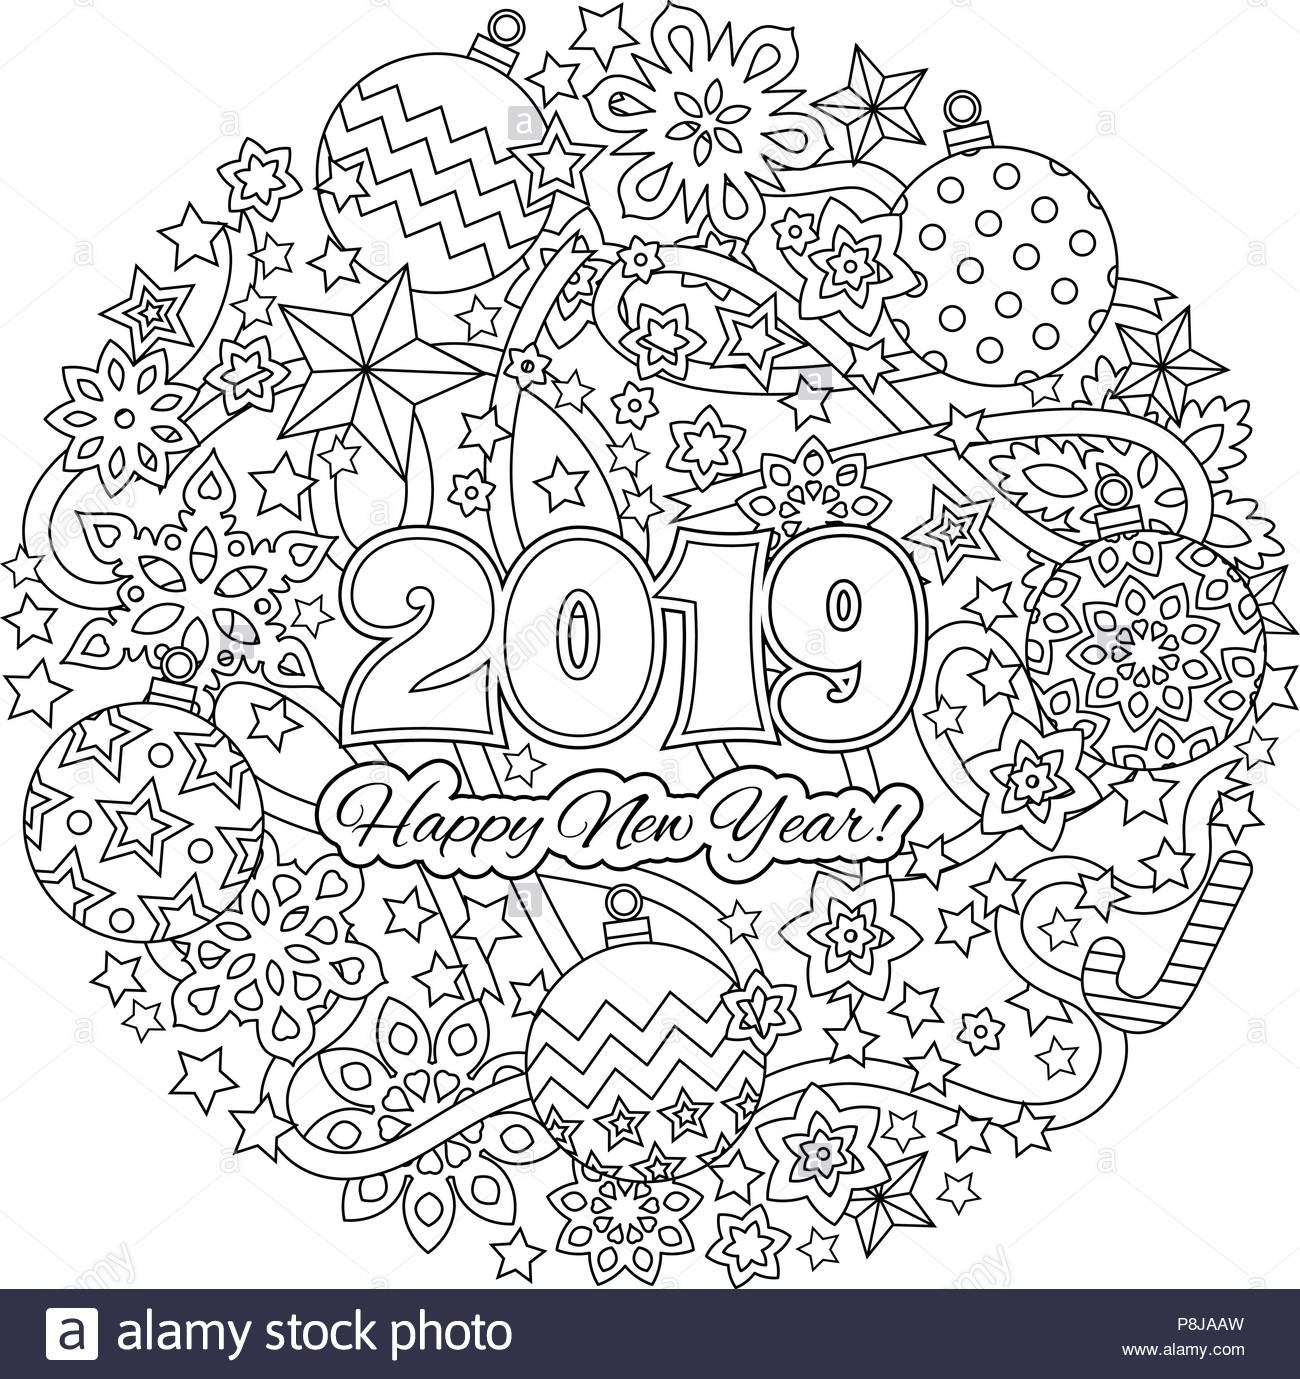 Christmas Mandalas Coloring Book With New Year Congratulation Card Numbers 2018 On Winter Holiday